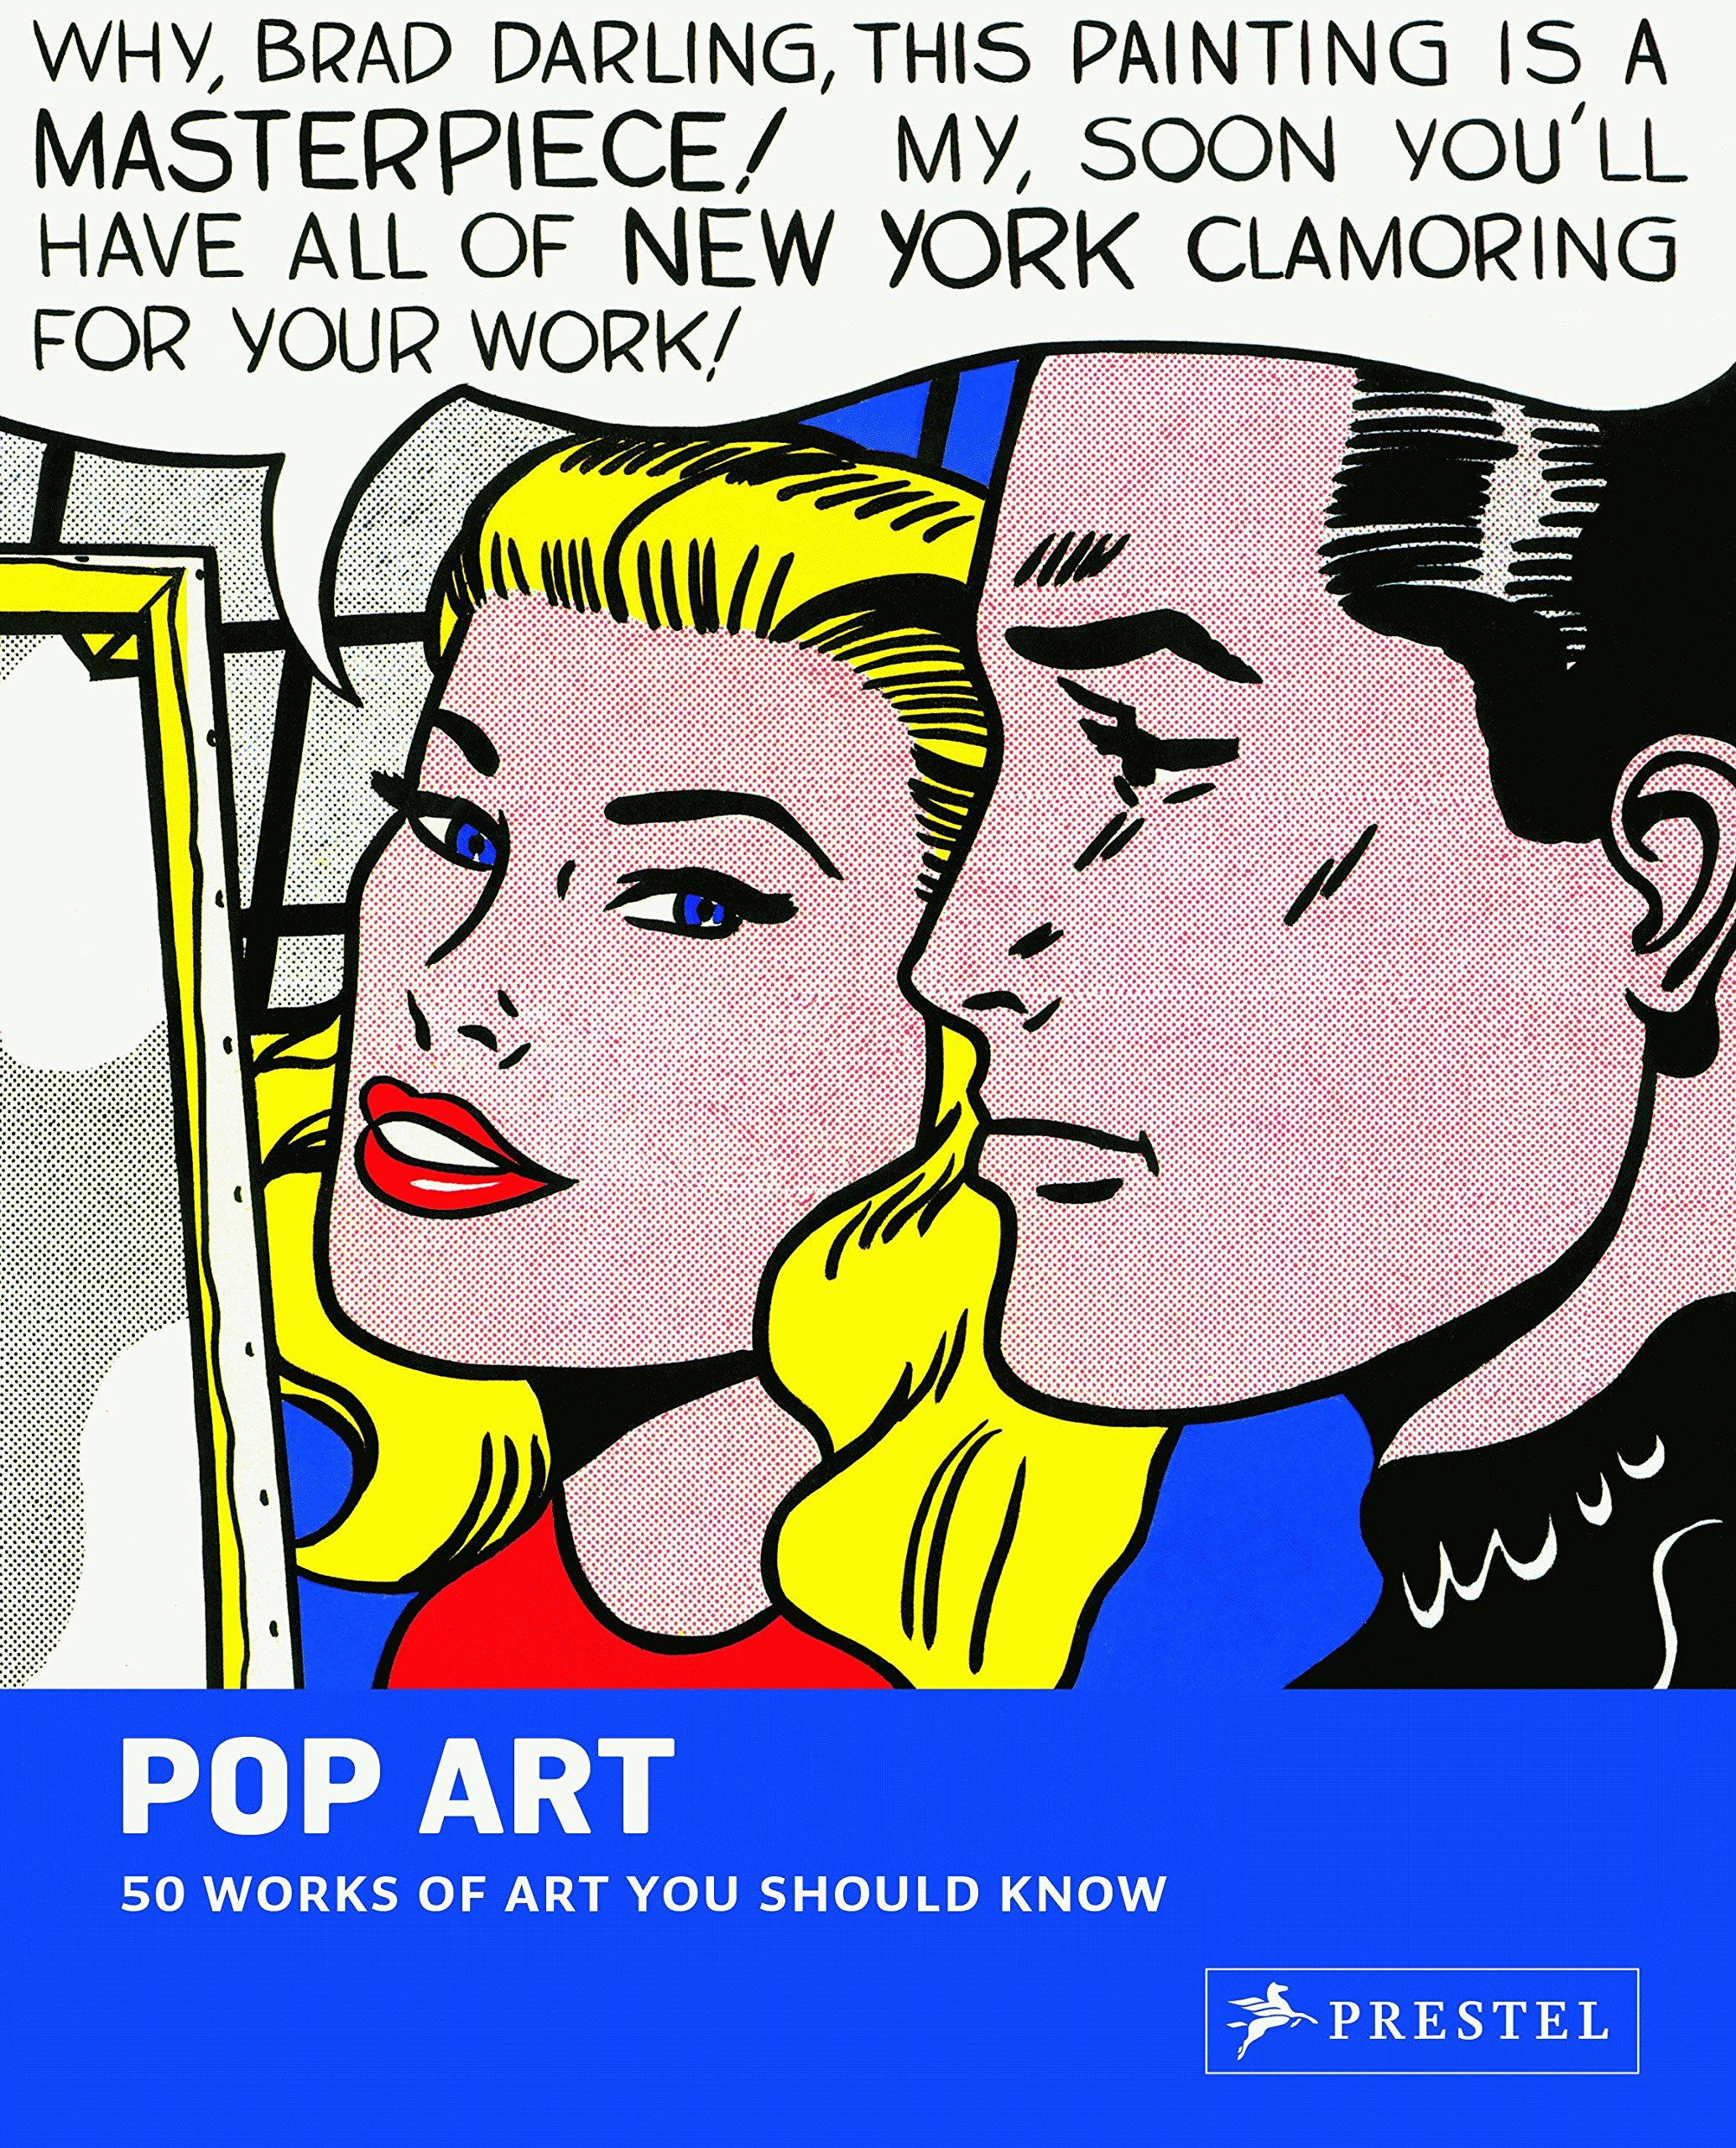 images?q=tbn:ANd9GcQh_l3eQ5xwiPy07kGEXjmjgmBKBRB7H2mRxCGhv1tFWg5c_mWT Awesome Artists Pop Art @koolgadgetz.com.info